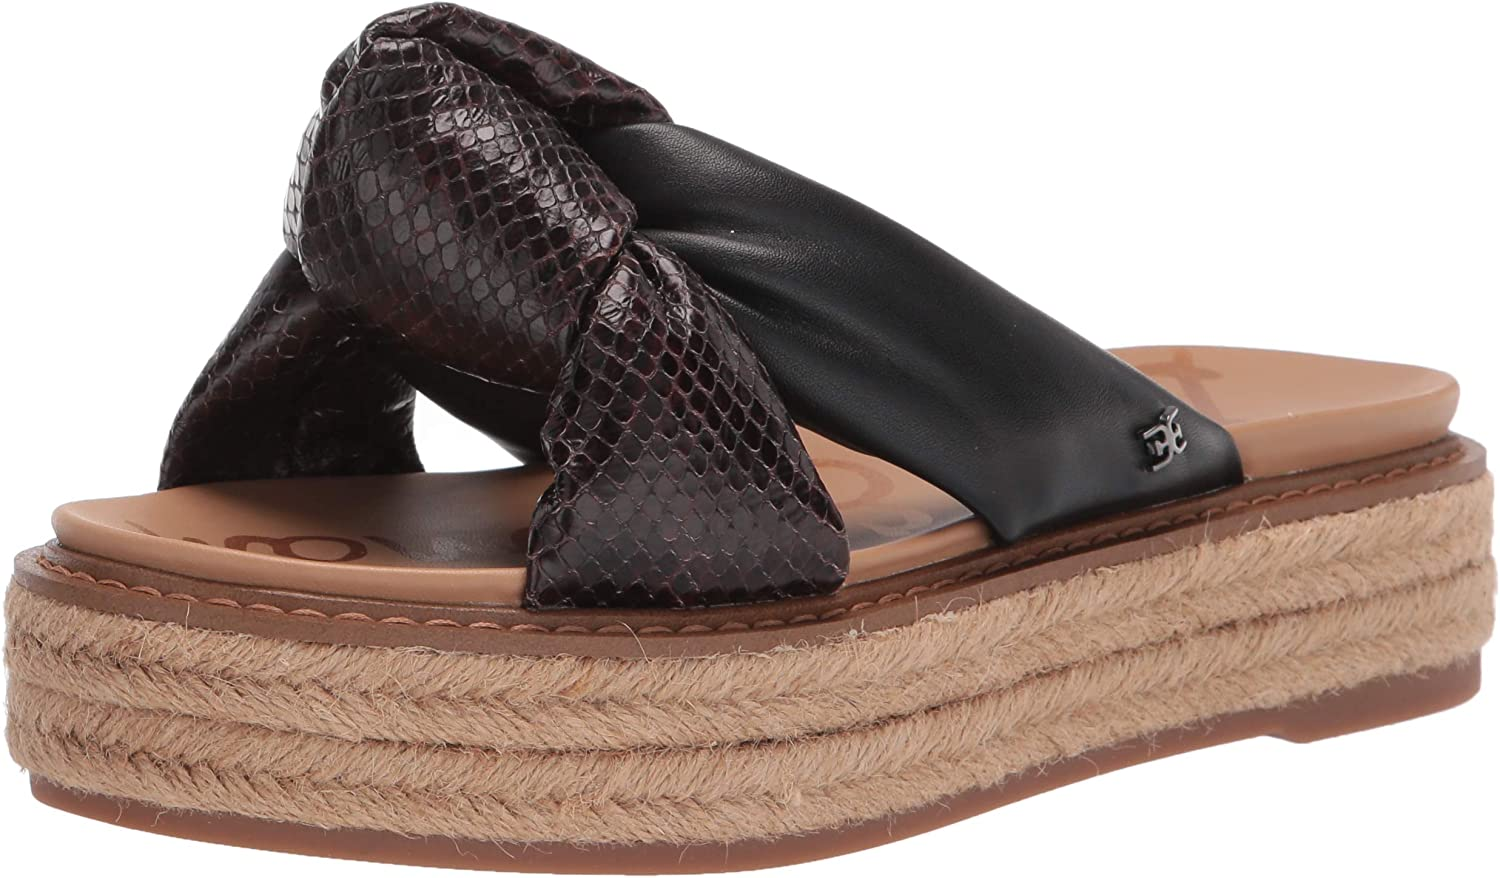 Sam Edelman Women's Kory Wedge Sandal Selling and Department store selling Espadrille